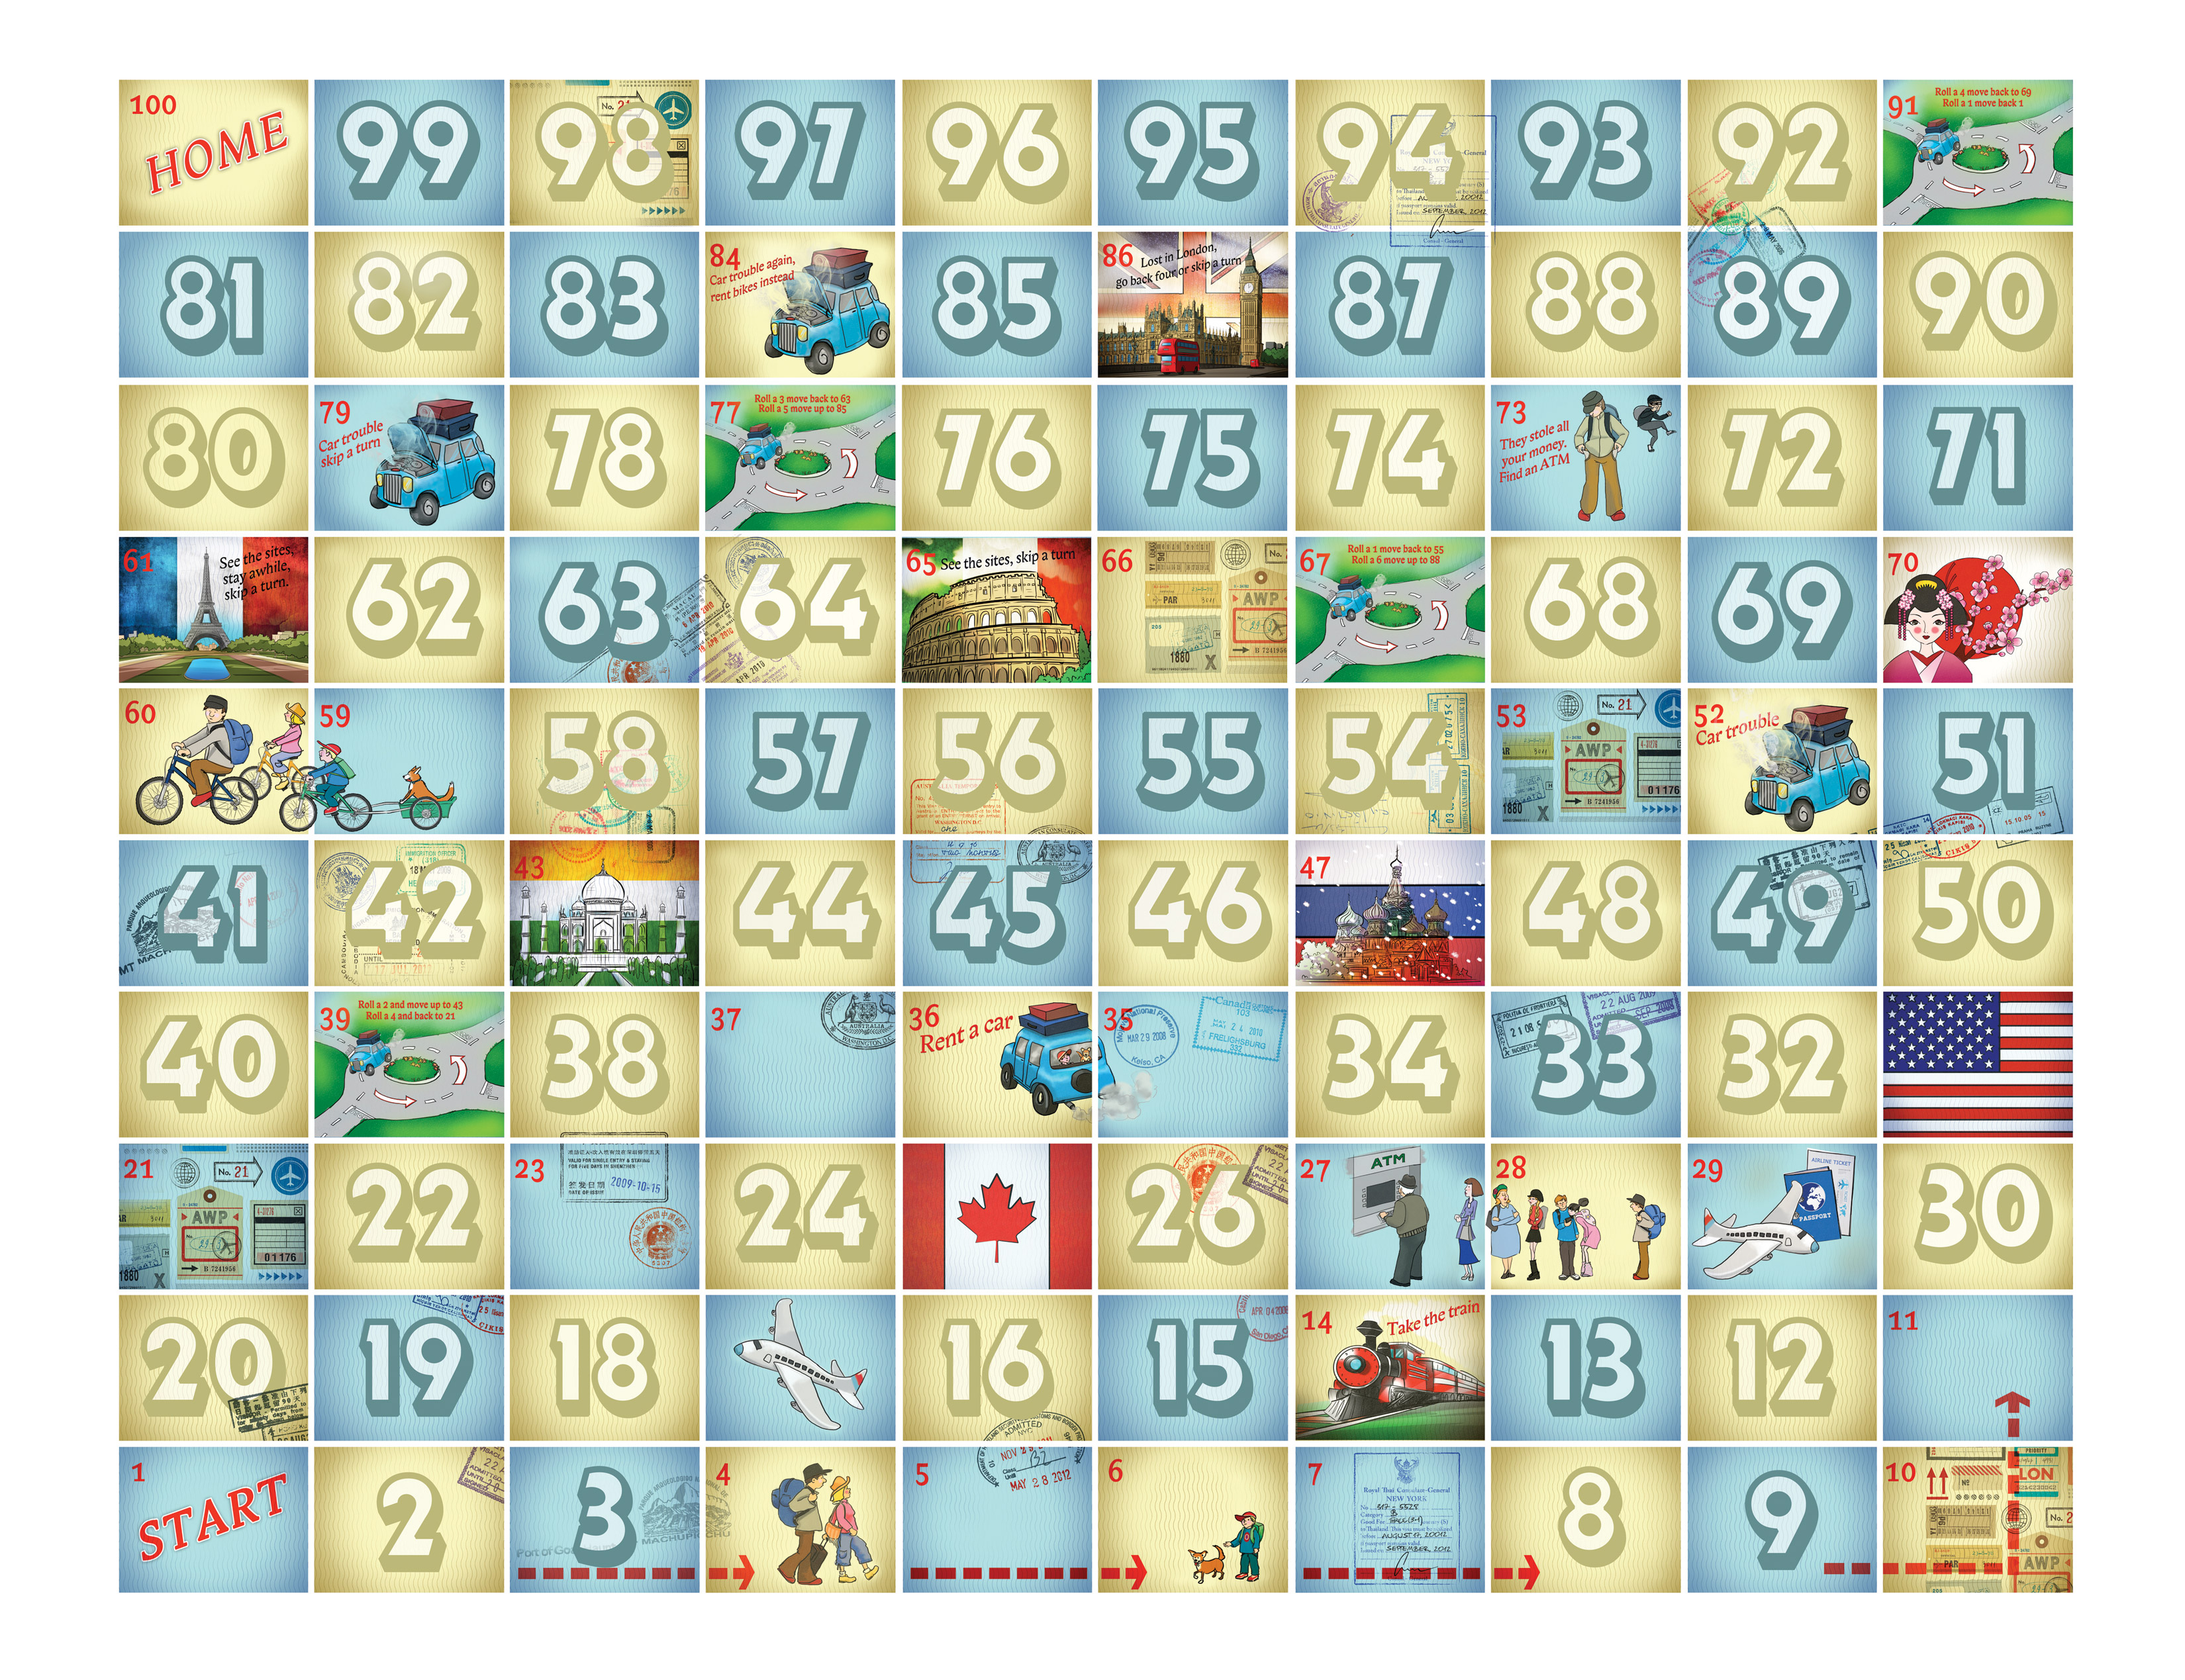 ... Pictures Board For Snakes And Ladders Chutes And Ladders Or